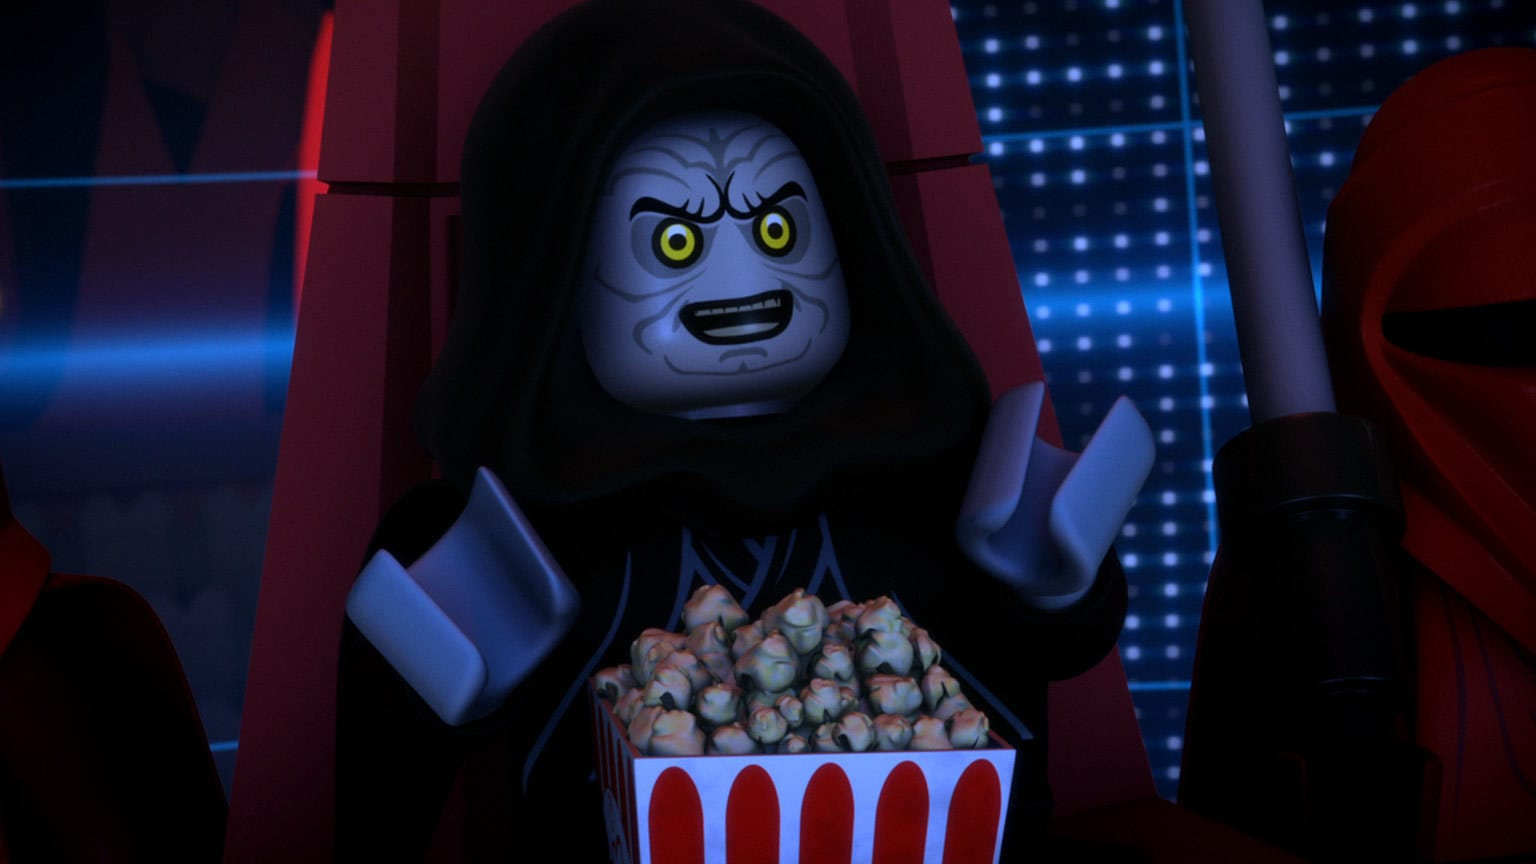 10 Essential Episodes of LEGO Star Wars to Watch on Disney+